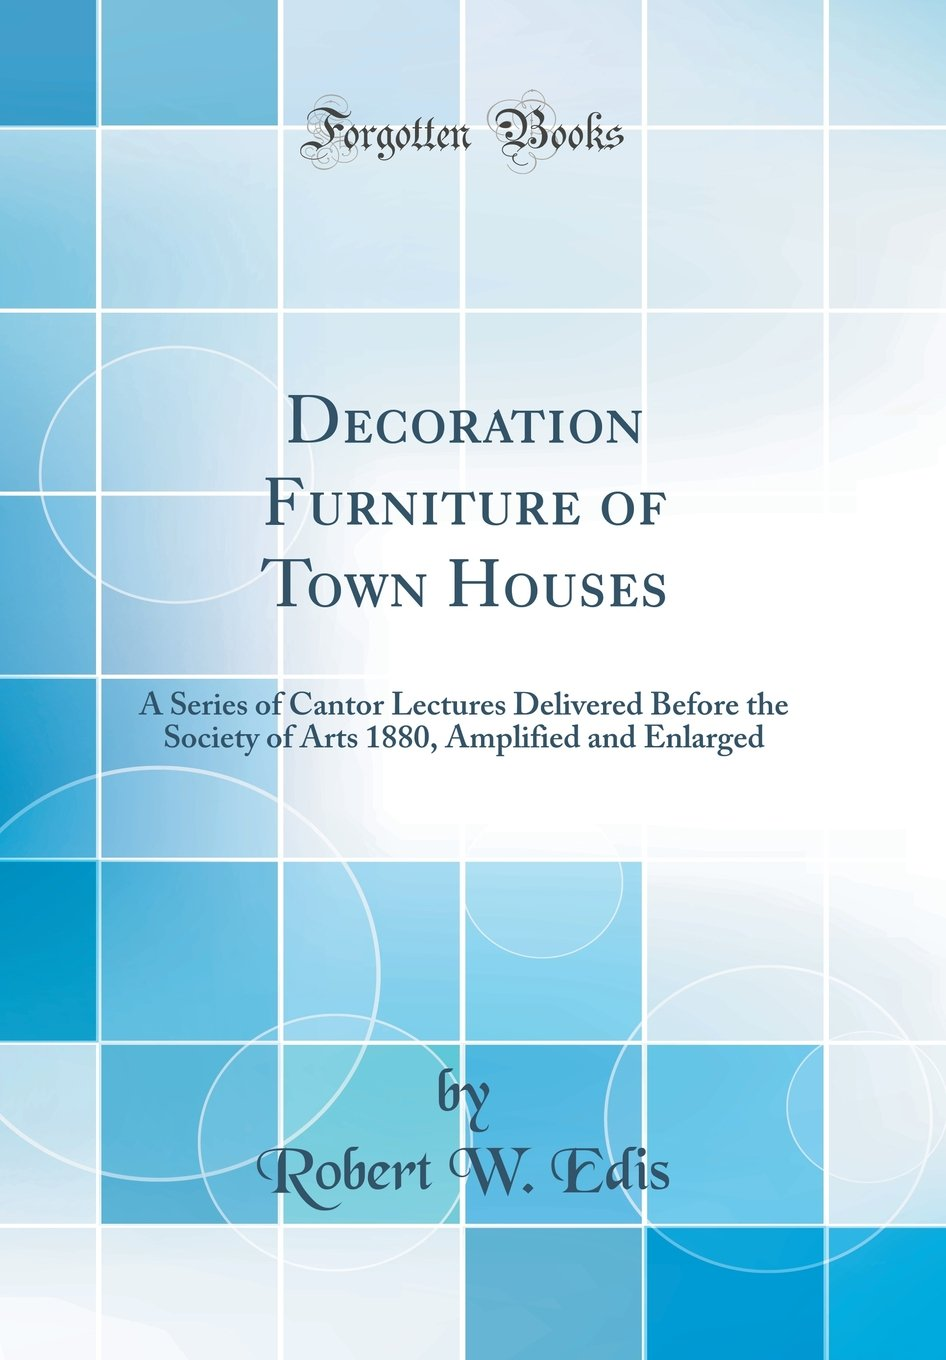 Decoration Furniture of Town Houses: A Series of Cantor Lectures Delivered Before the Society of Arts 1880, Amplified and Enlarged (Classic Reprint) PDF